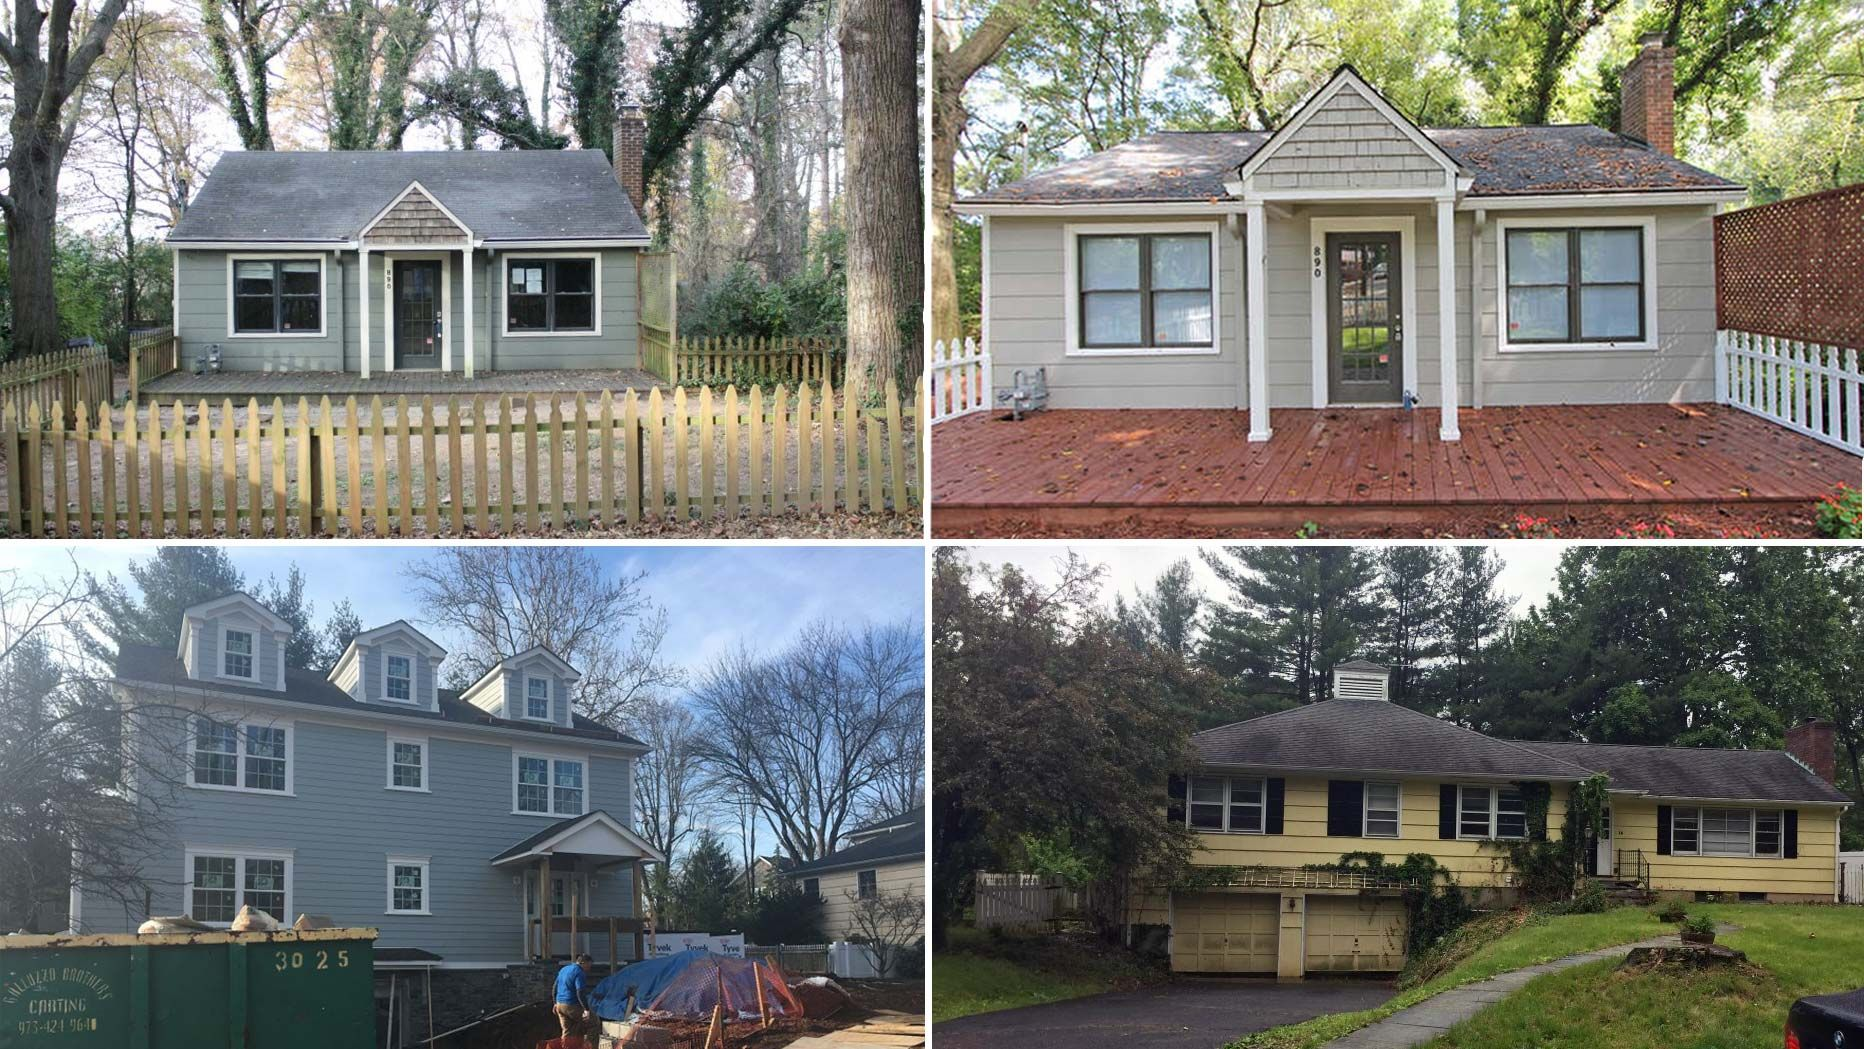 Before And After House Flipping Pics Get Tips For Your Next Project Flipping Houses Property Backyard